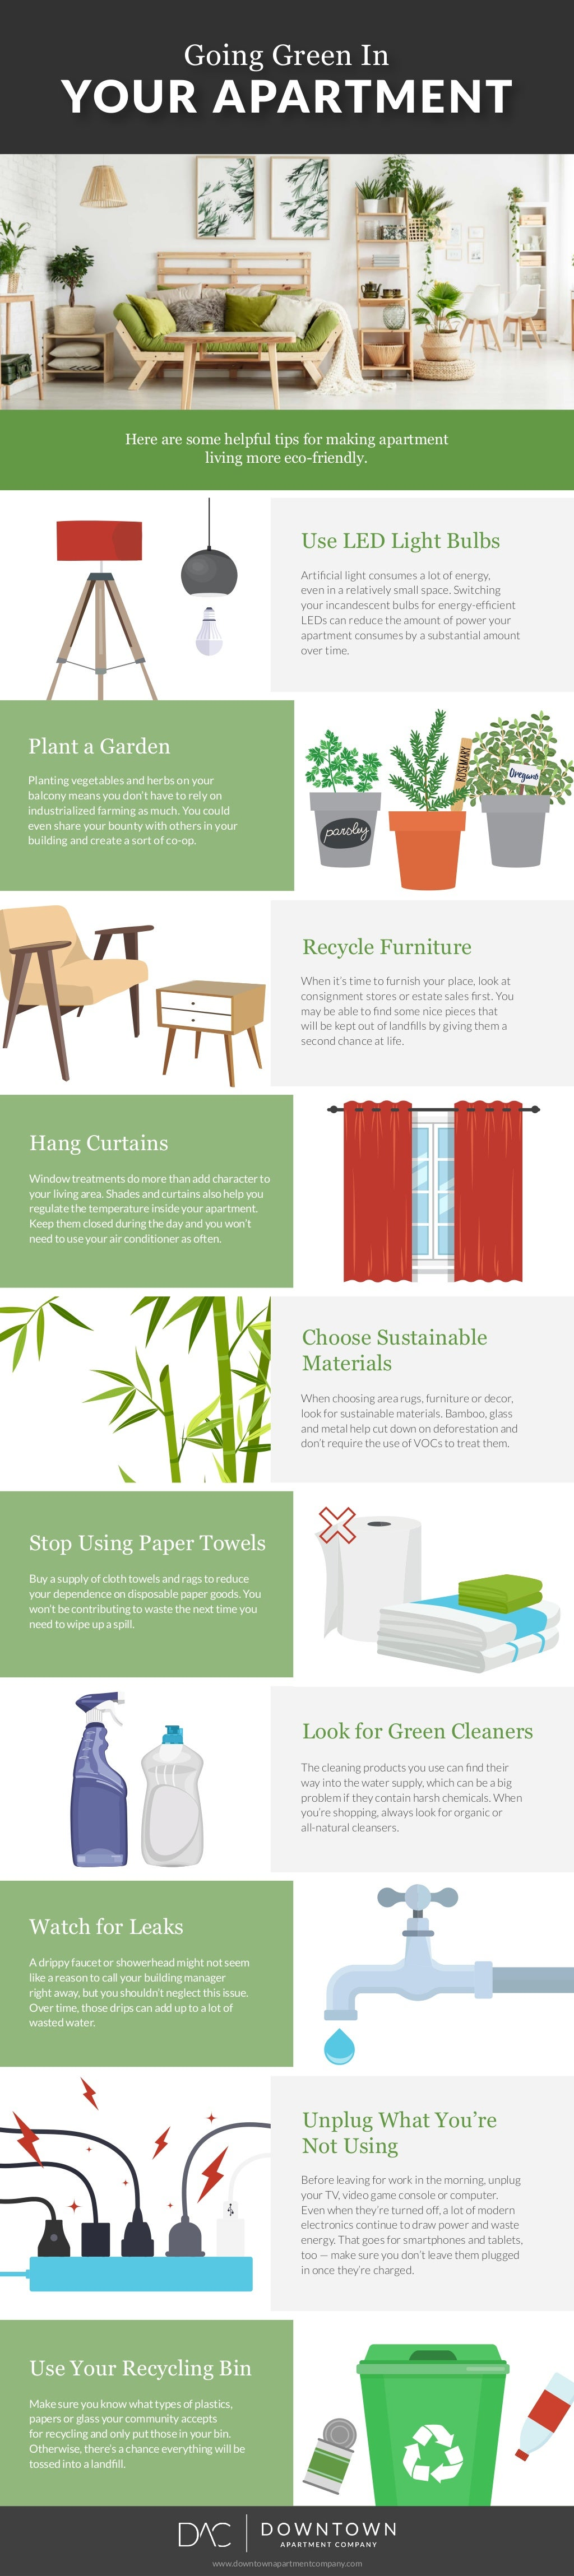 Going Green In YOUR APARTMENT Plant a Garden Planting vegetables and herbs on your balcony means you don't have to rely on...